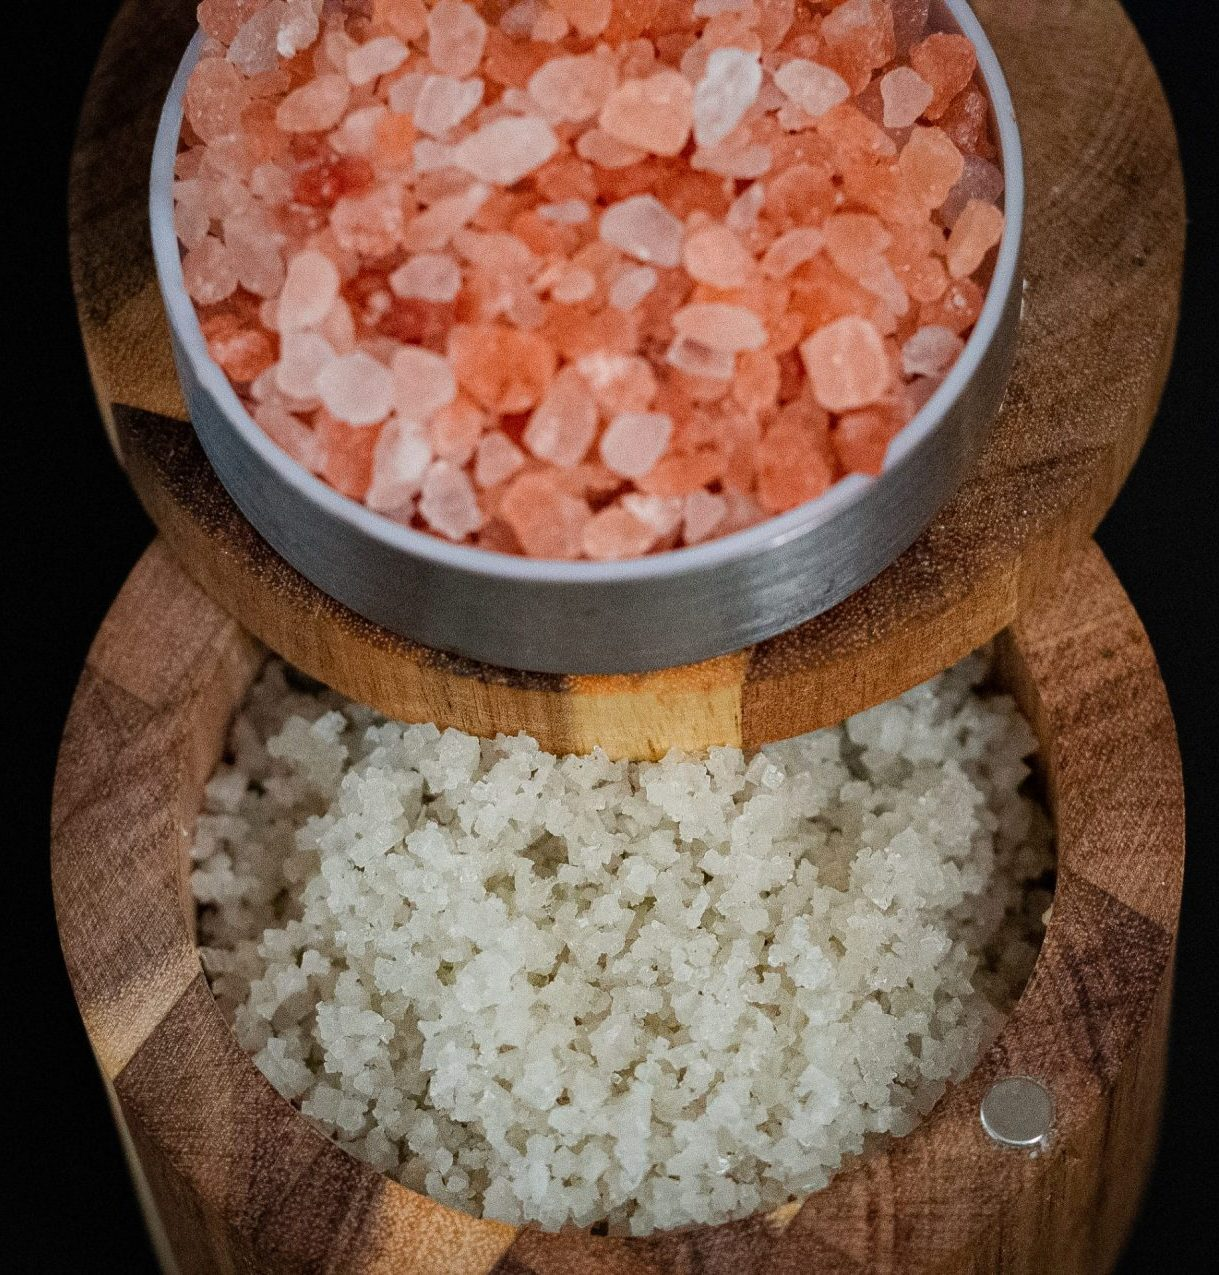 Pink himalayan and sea salt in a brown wooden salt container